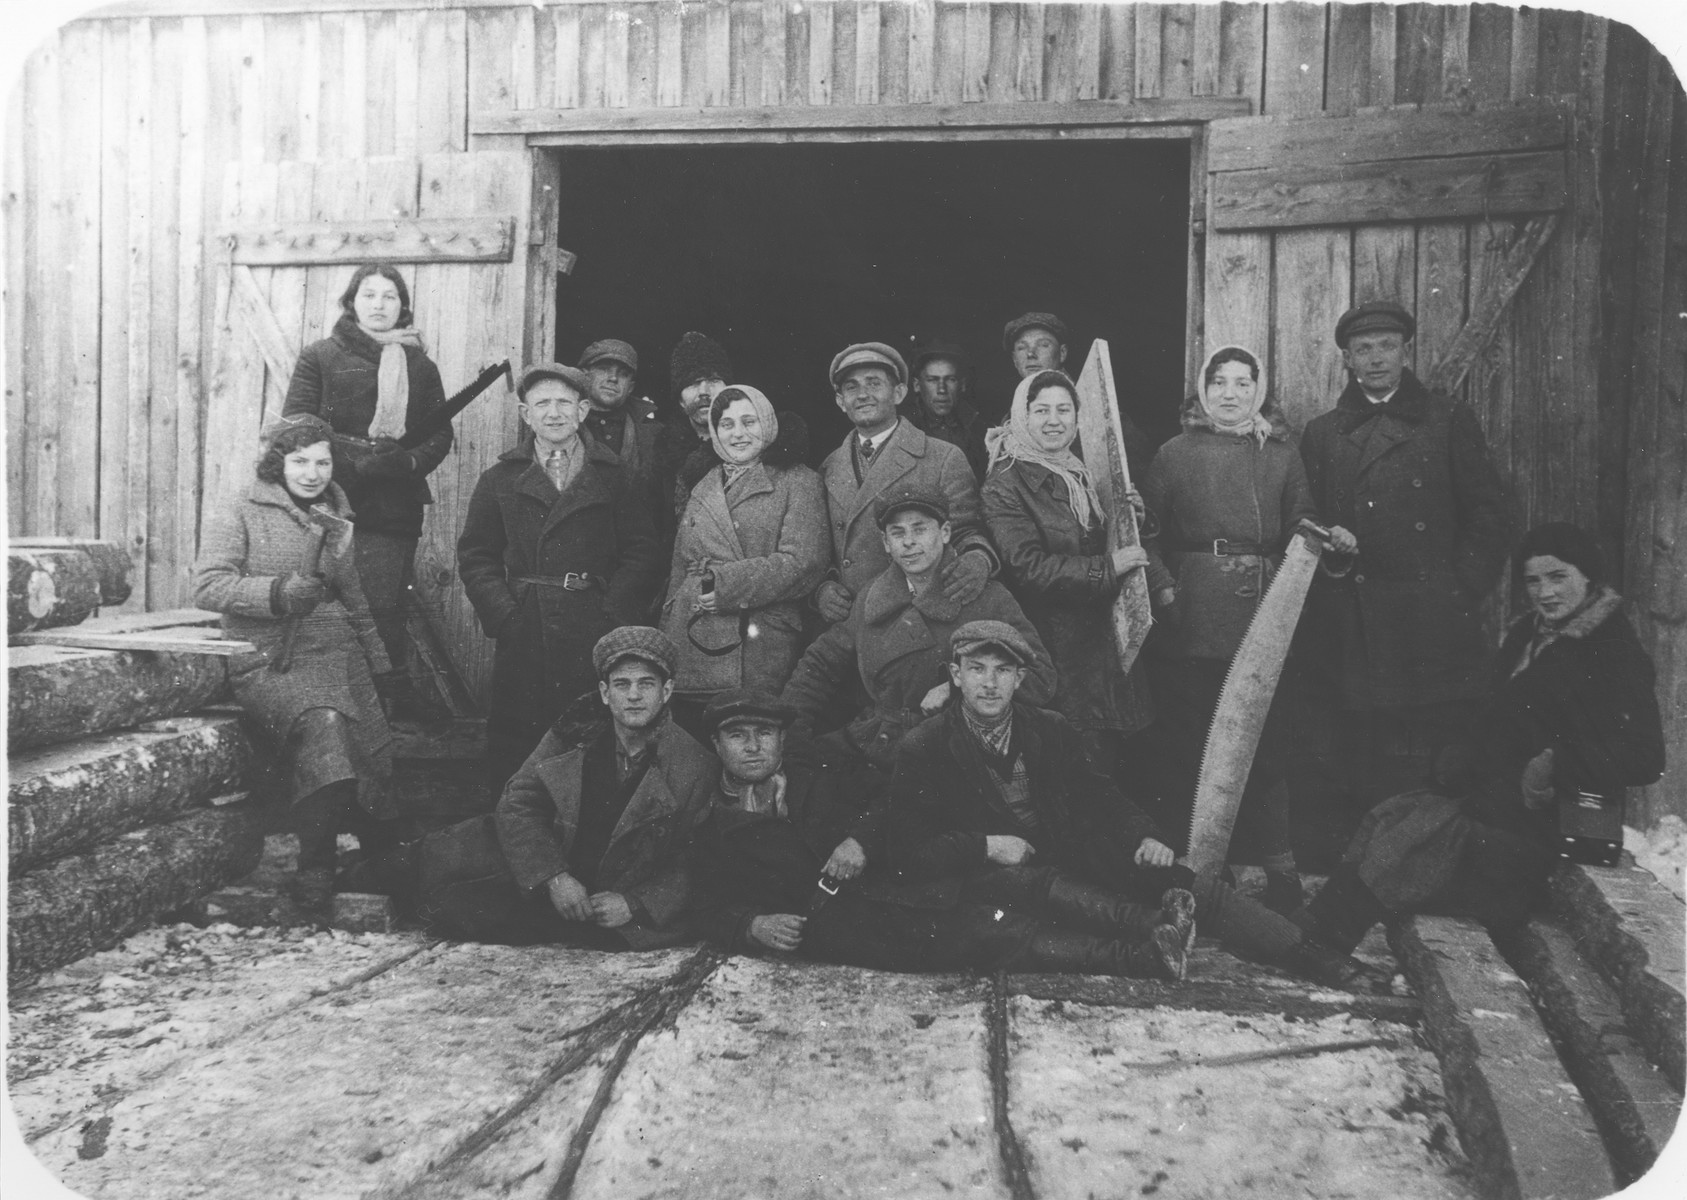 A group of young Zionists pose in front of a shed at a lumberyard in Bedzin prior to the departure of one of their members for Palestine.  Pictured holding the plank of wood is Bela Grajcer.